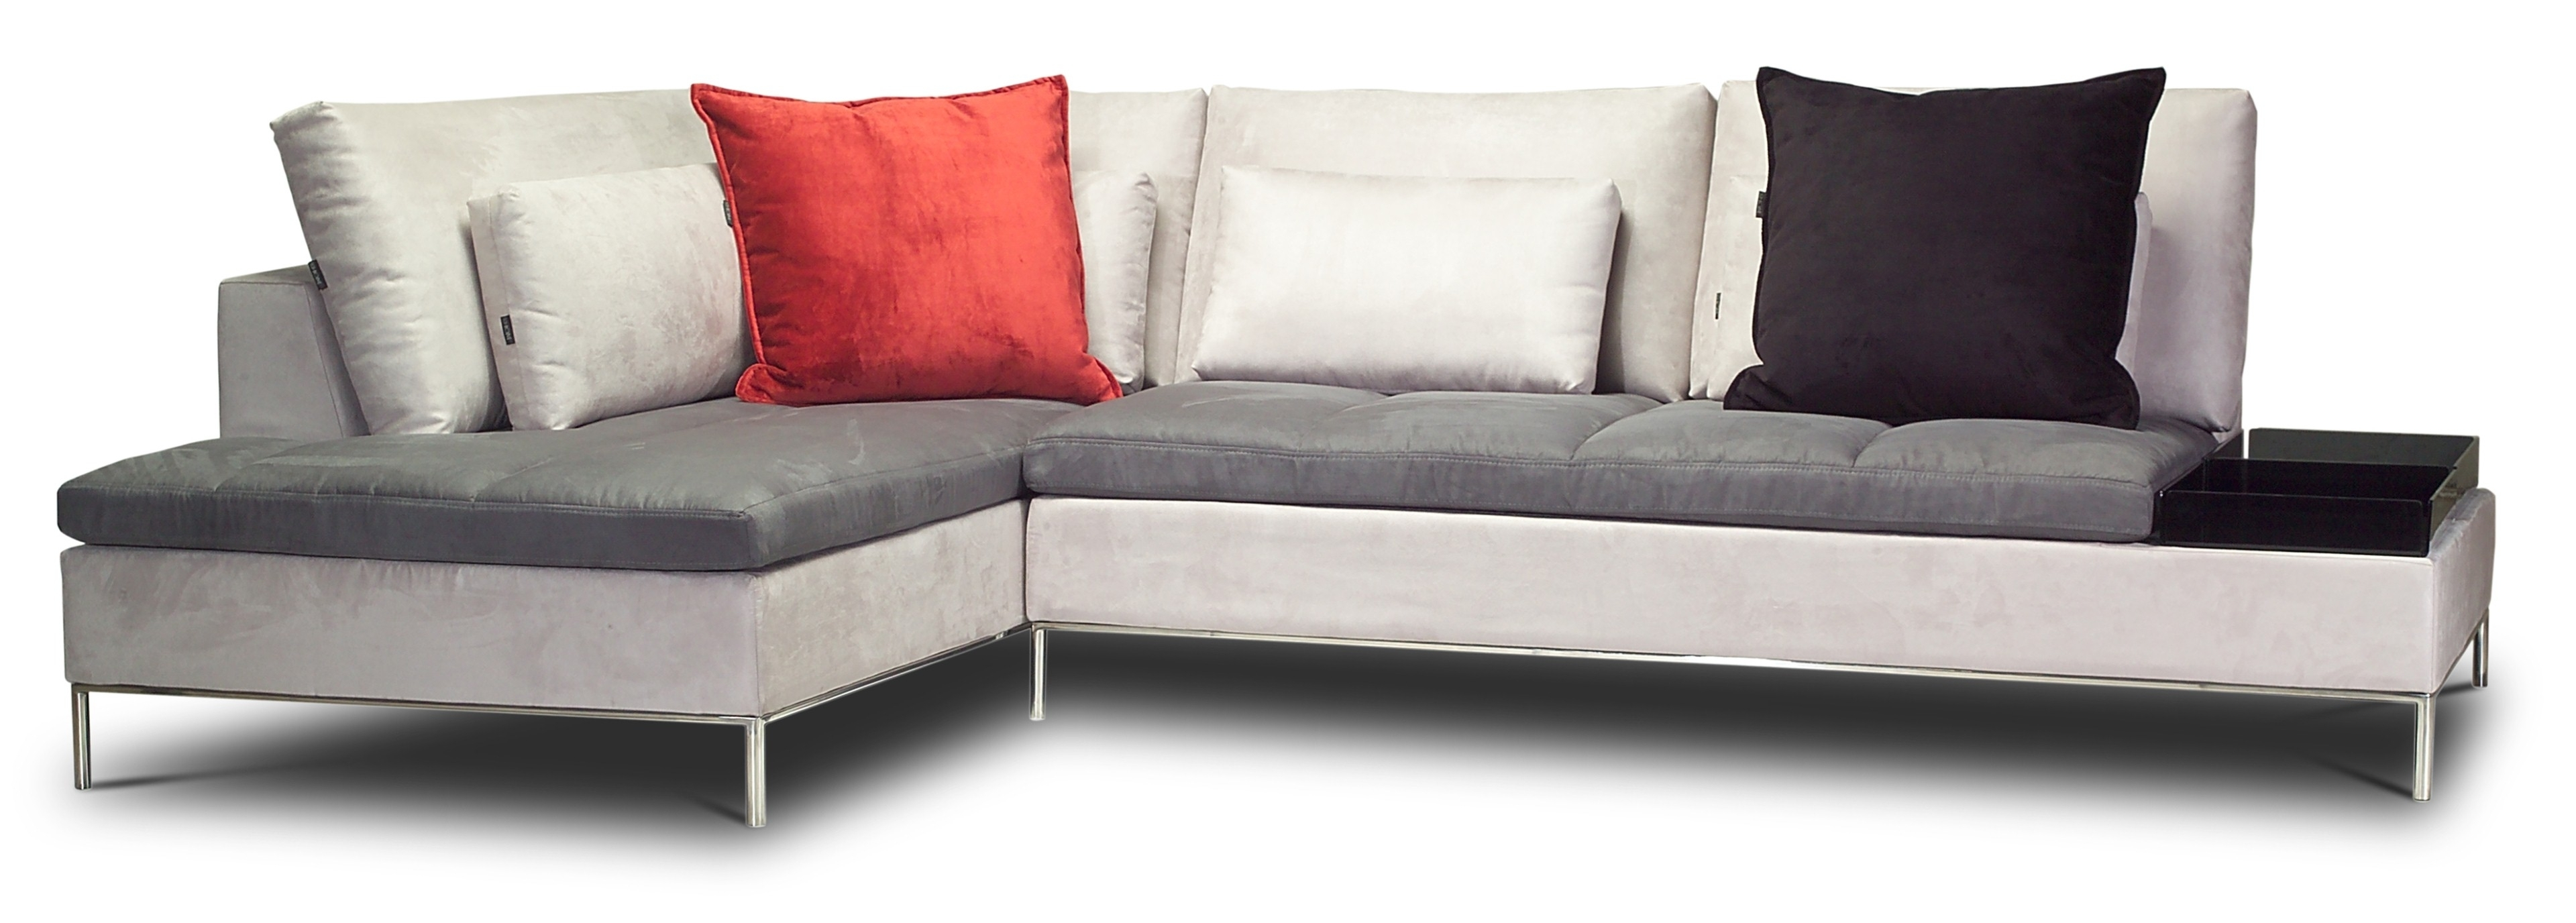 Jackknife Sectional Sofa Bed • Sofa Bed With Regard To Dallas Texas Sectional Sofas (View 10 of 10)